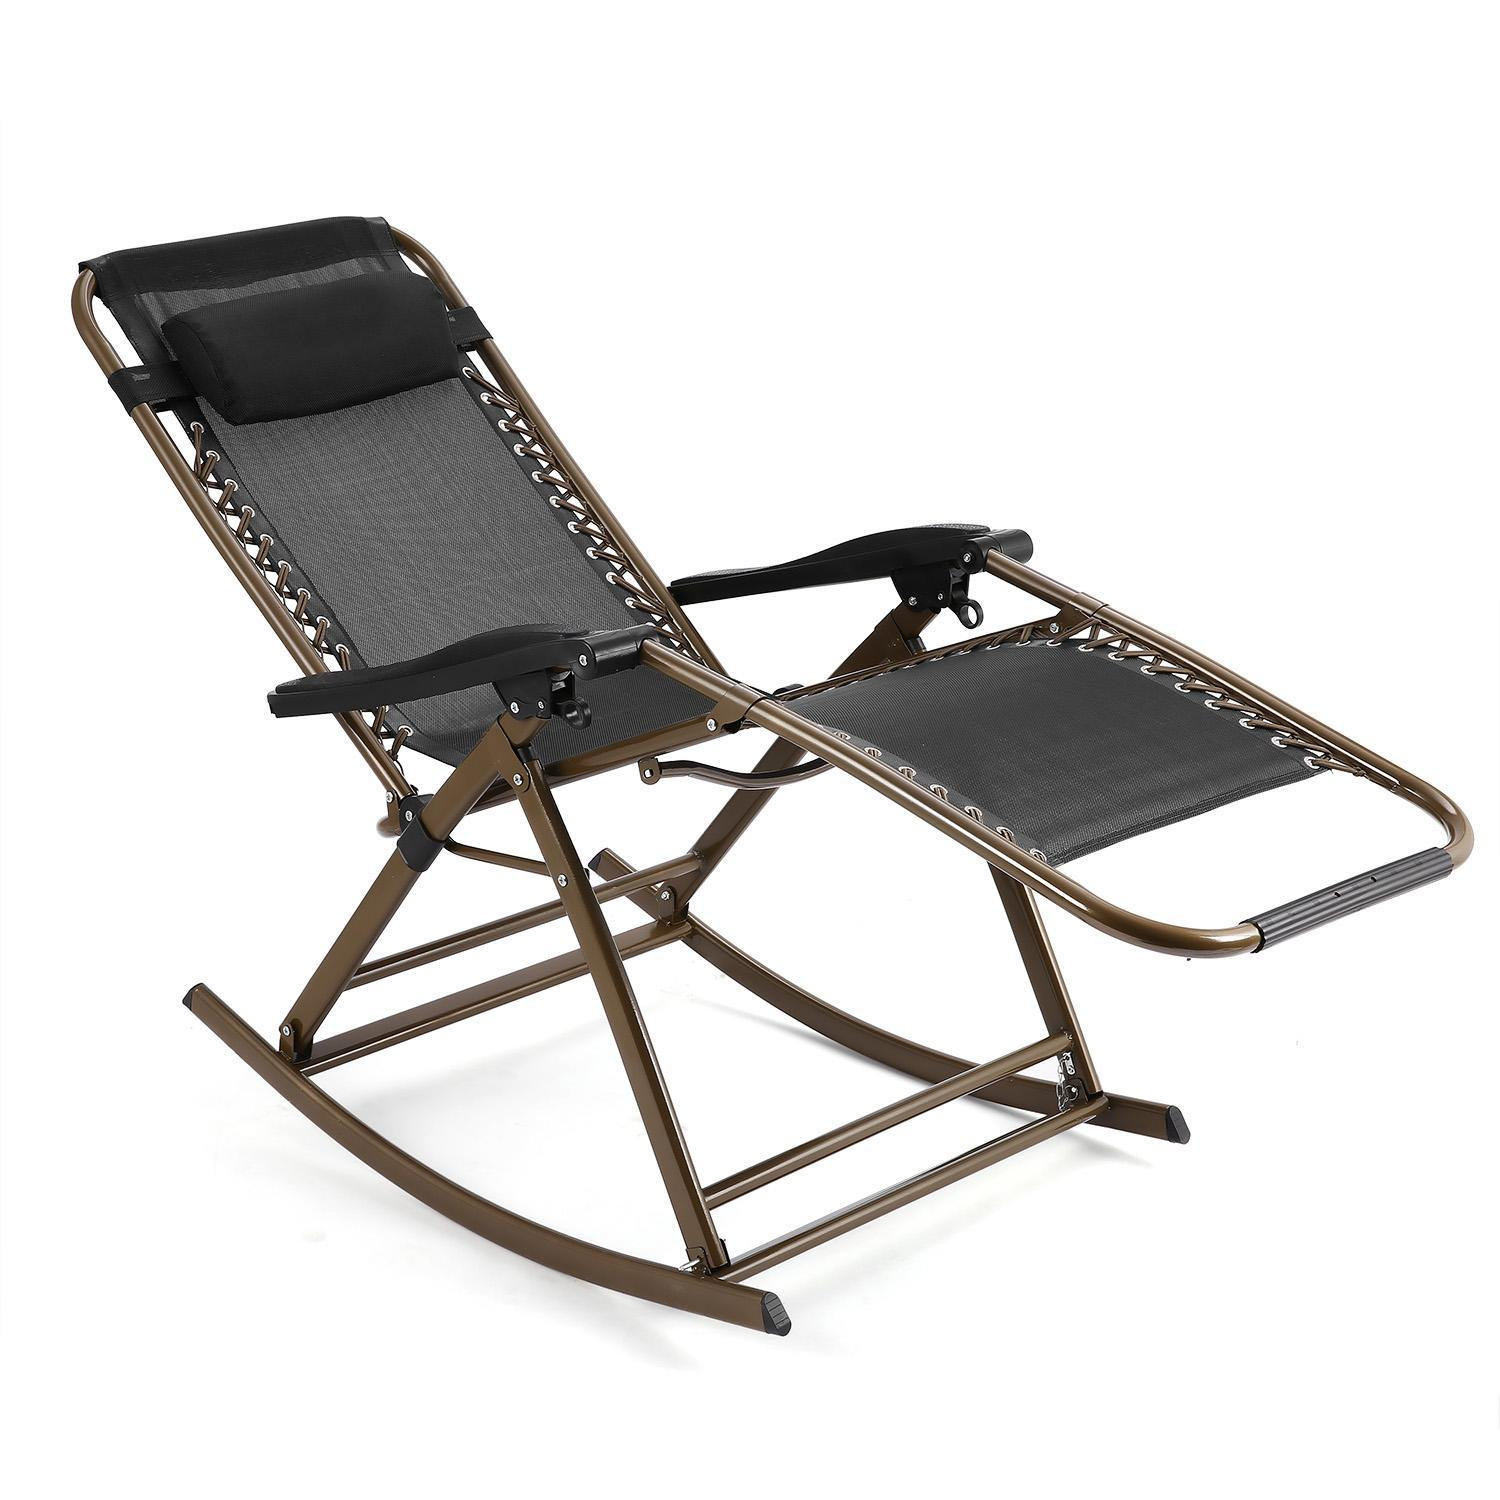 Folding Rocking Chair Zero Gravity Rocker Reclining Chair with Adjustable Pillow for Patio Garden Lawn Home  sc 1 st  Walmart & Outdoor Recliners - Walmart.com islam-shia.org